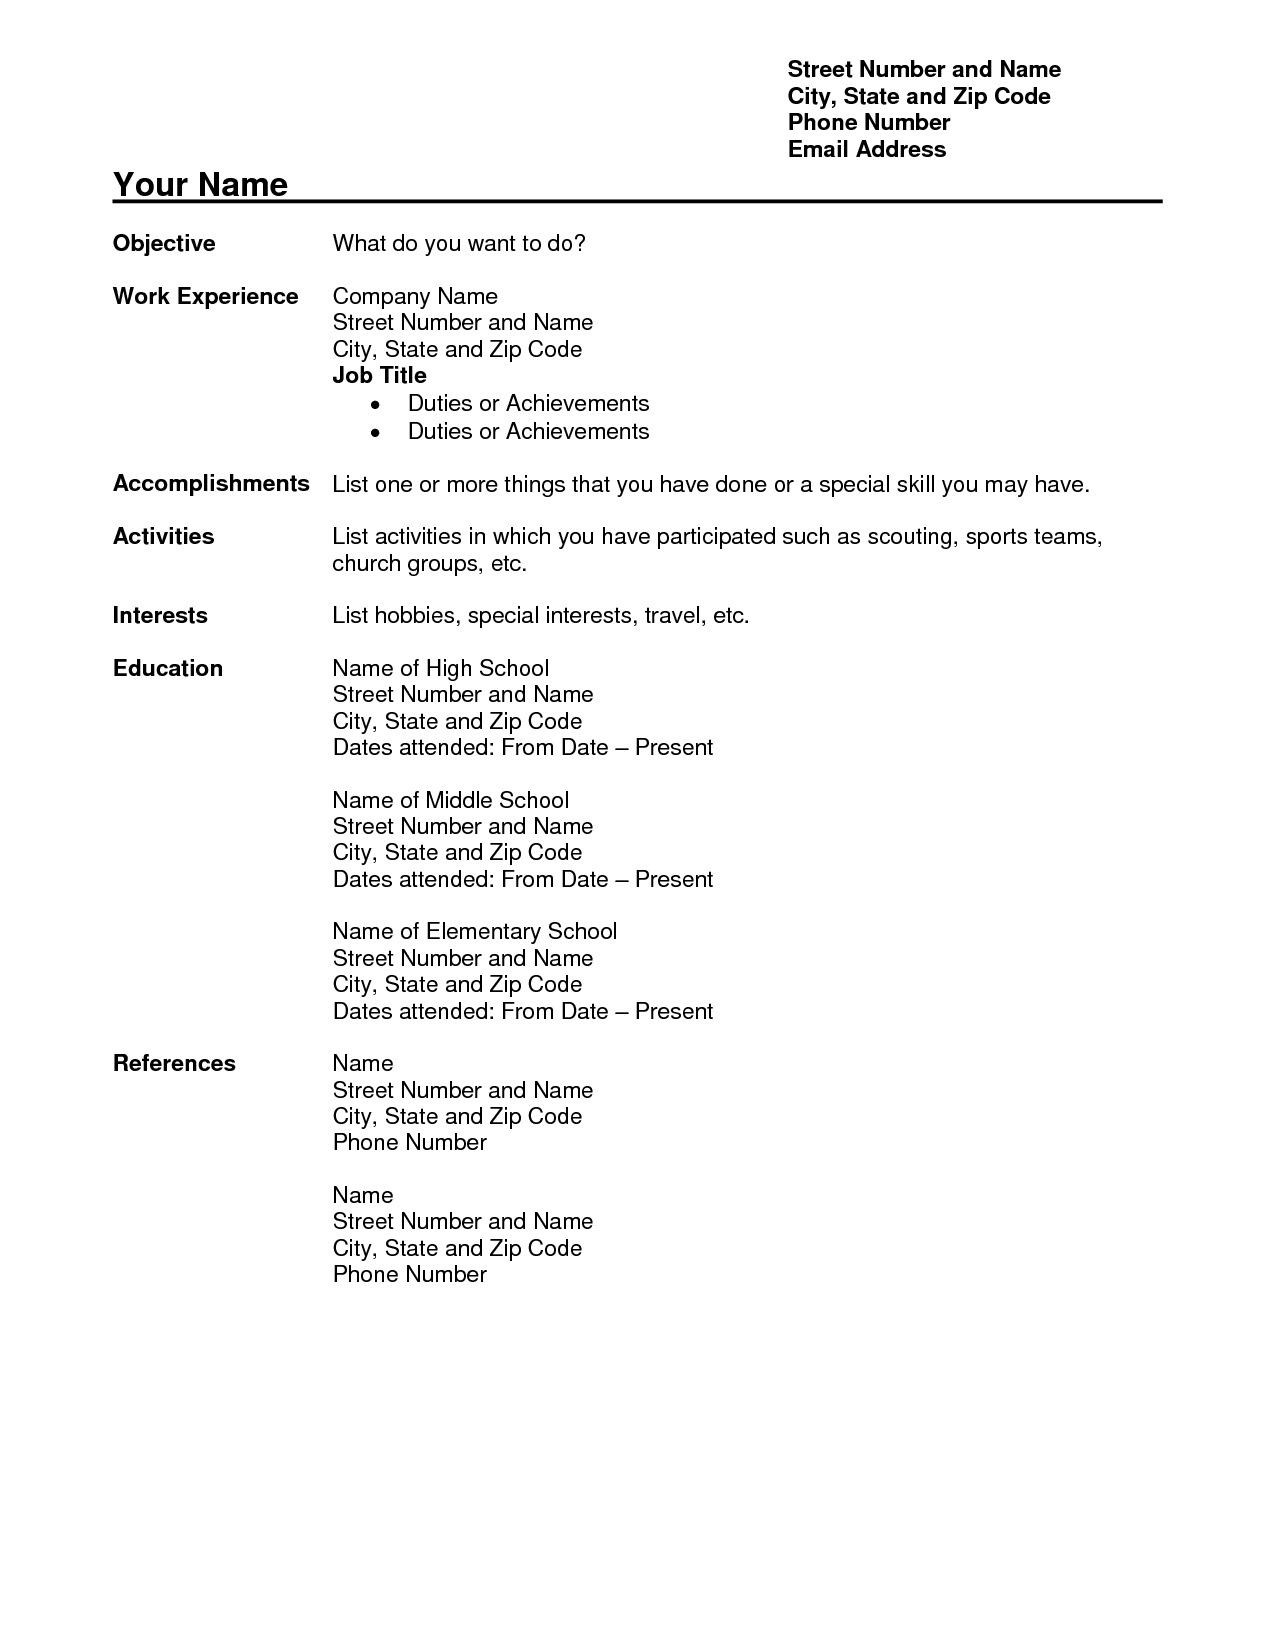 Free Teacher Resume Templates Download Free Teacher Resume Templates  Download, Free Teacher Resume Templates Microsoft  Free General Resume Template